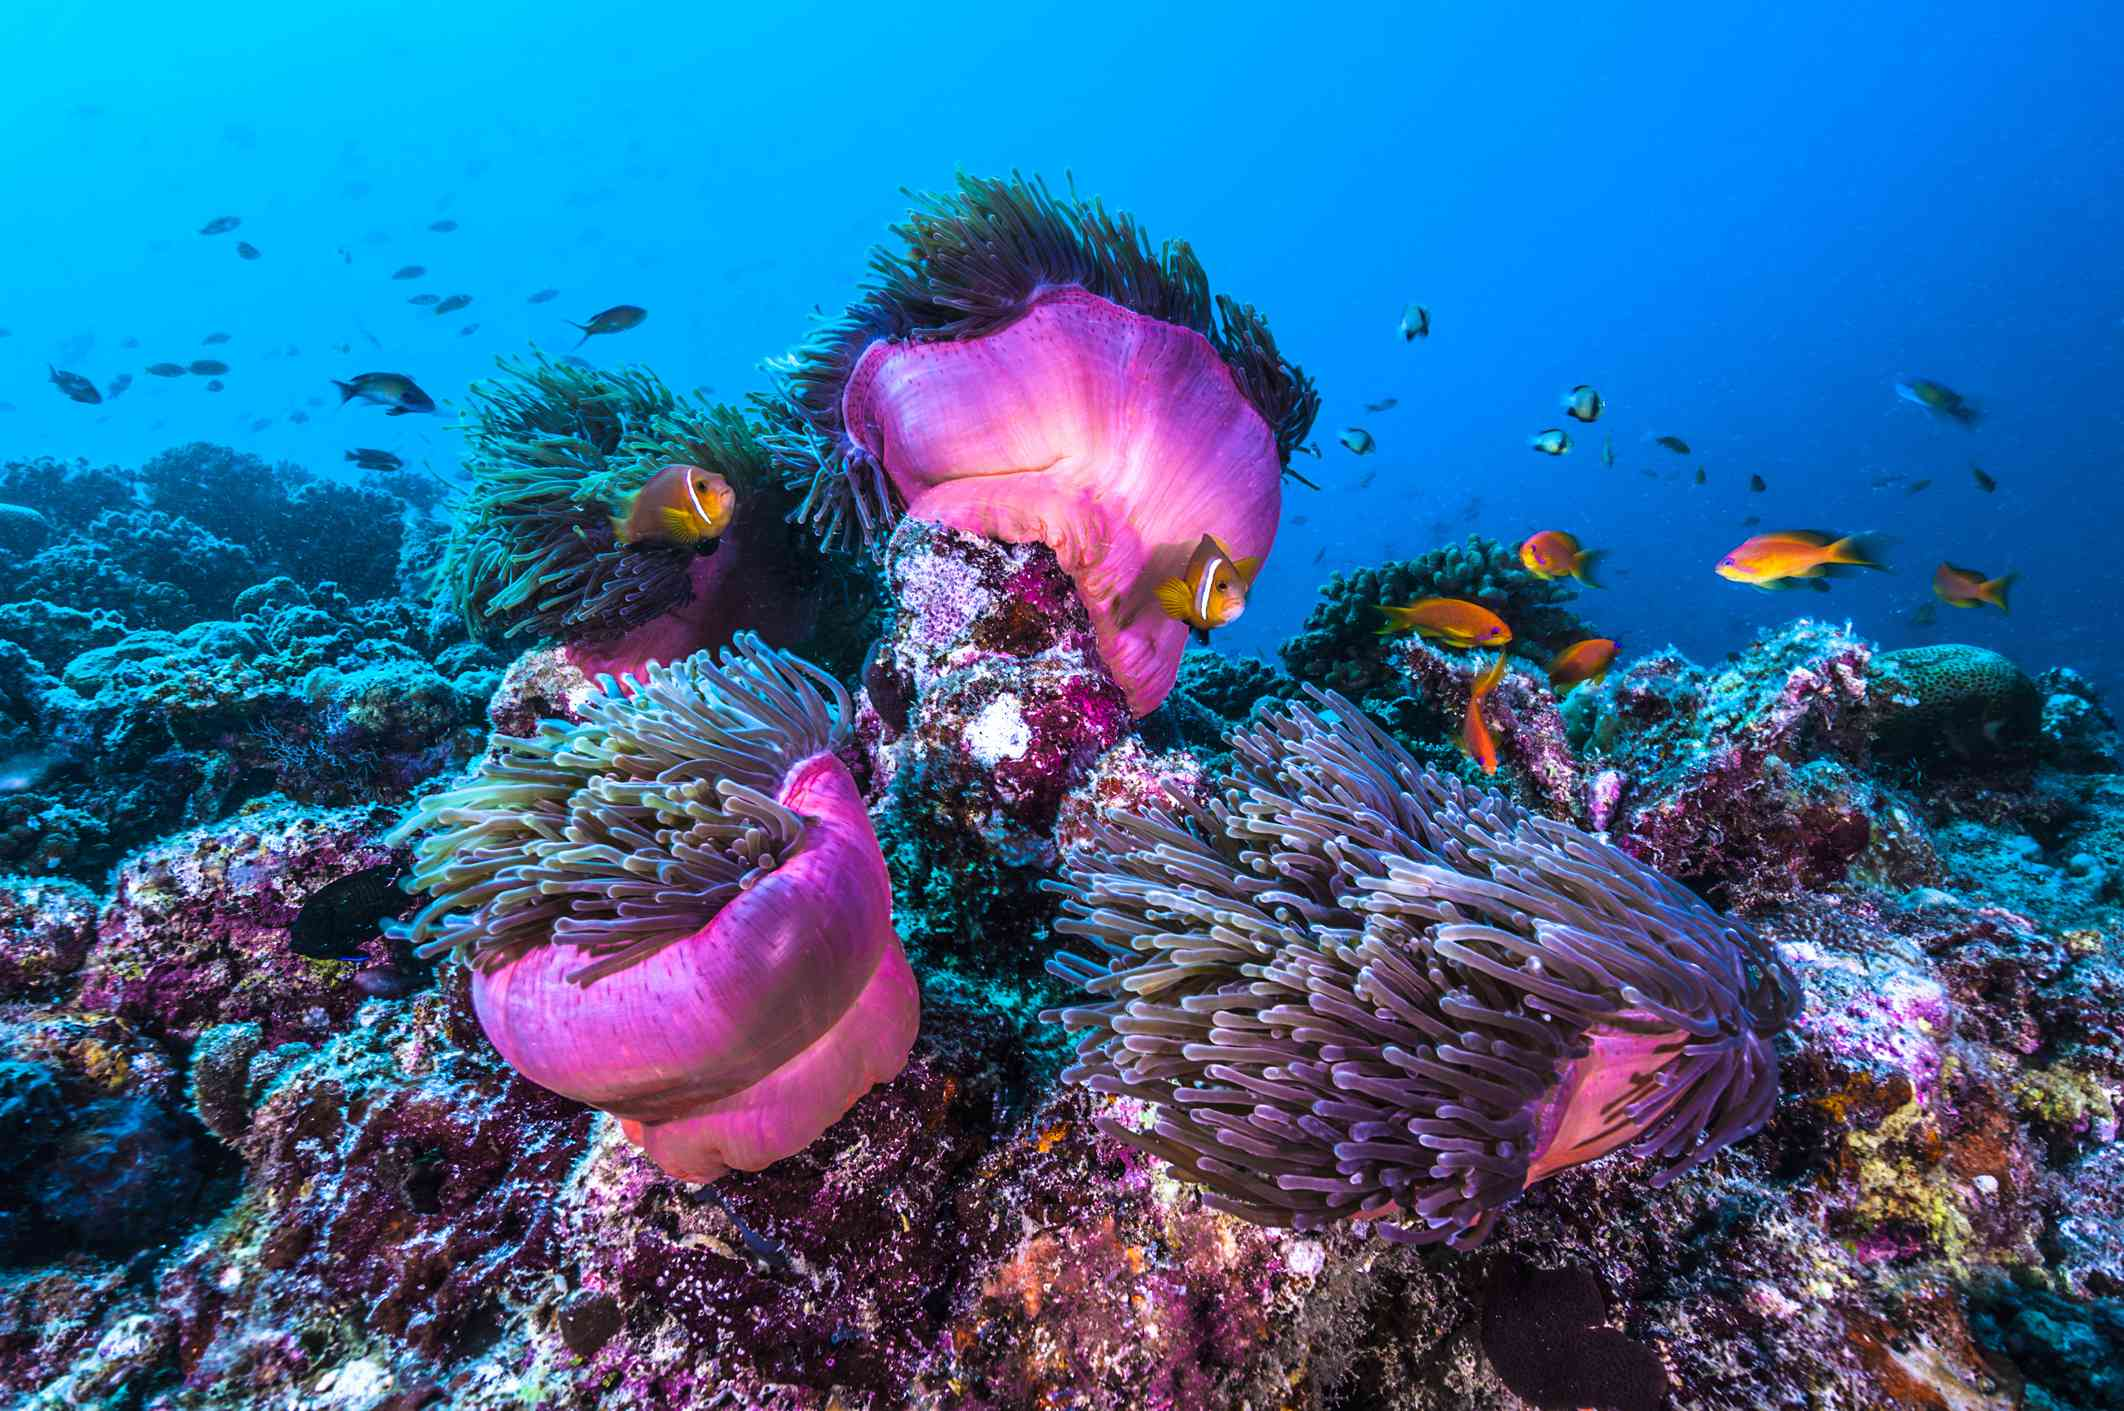 orange and black clown anemone fish in bright blue water swimming along the vibrant pink anemone and colorful coral reef